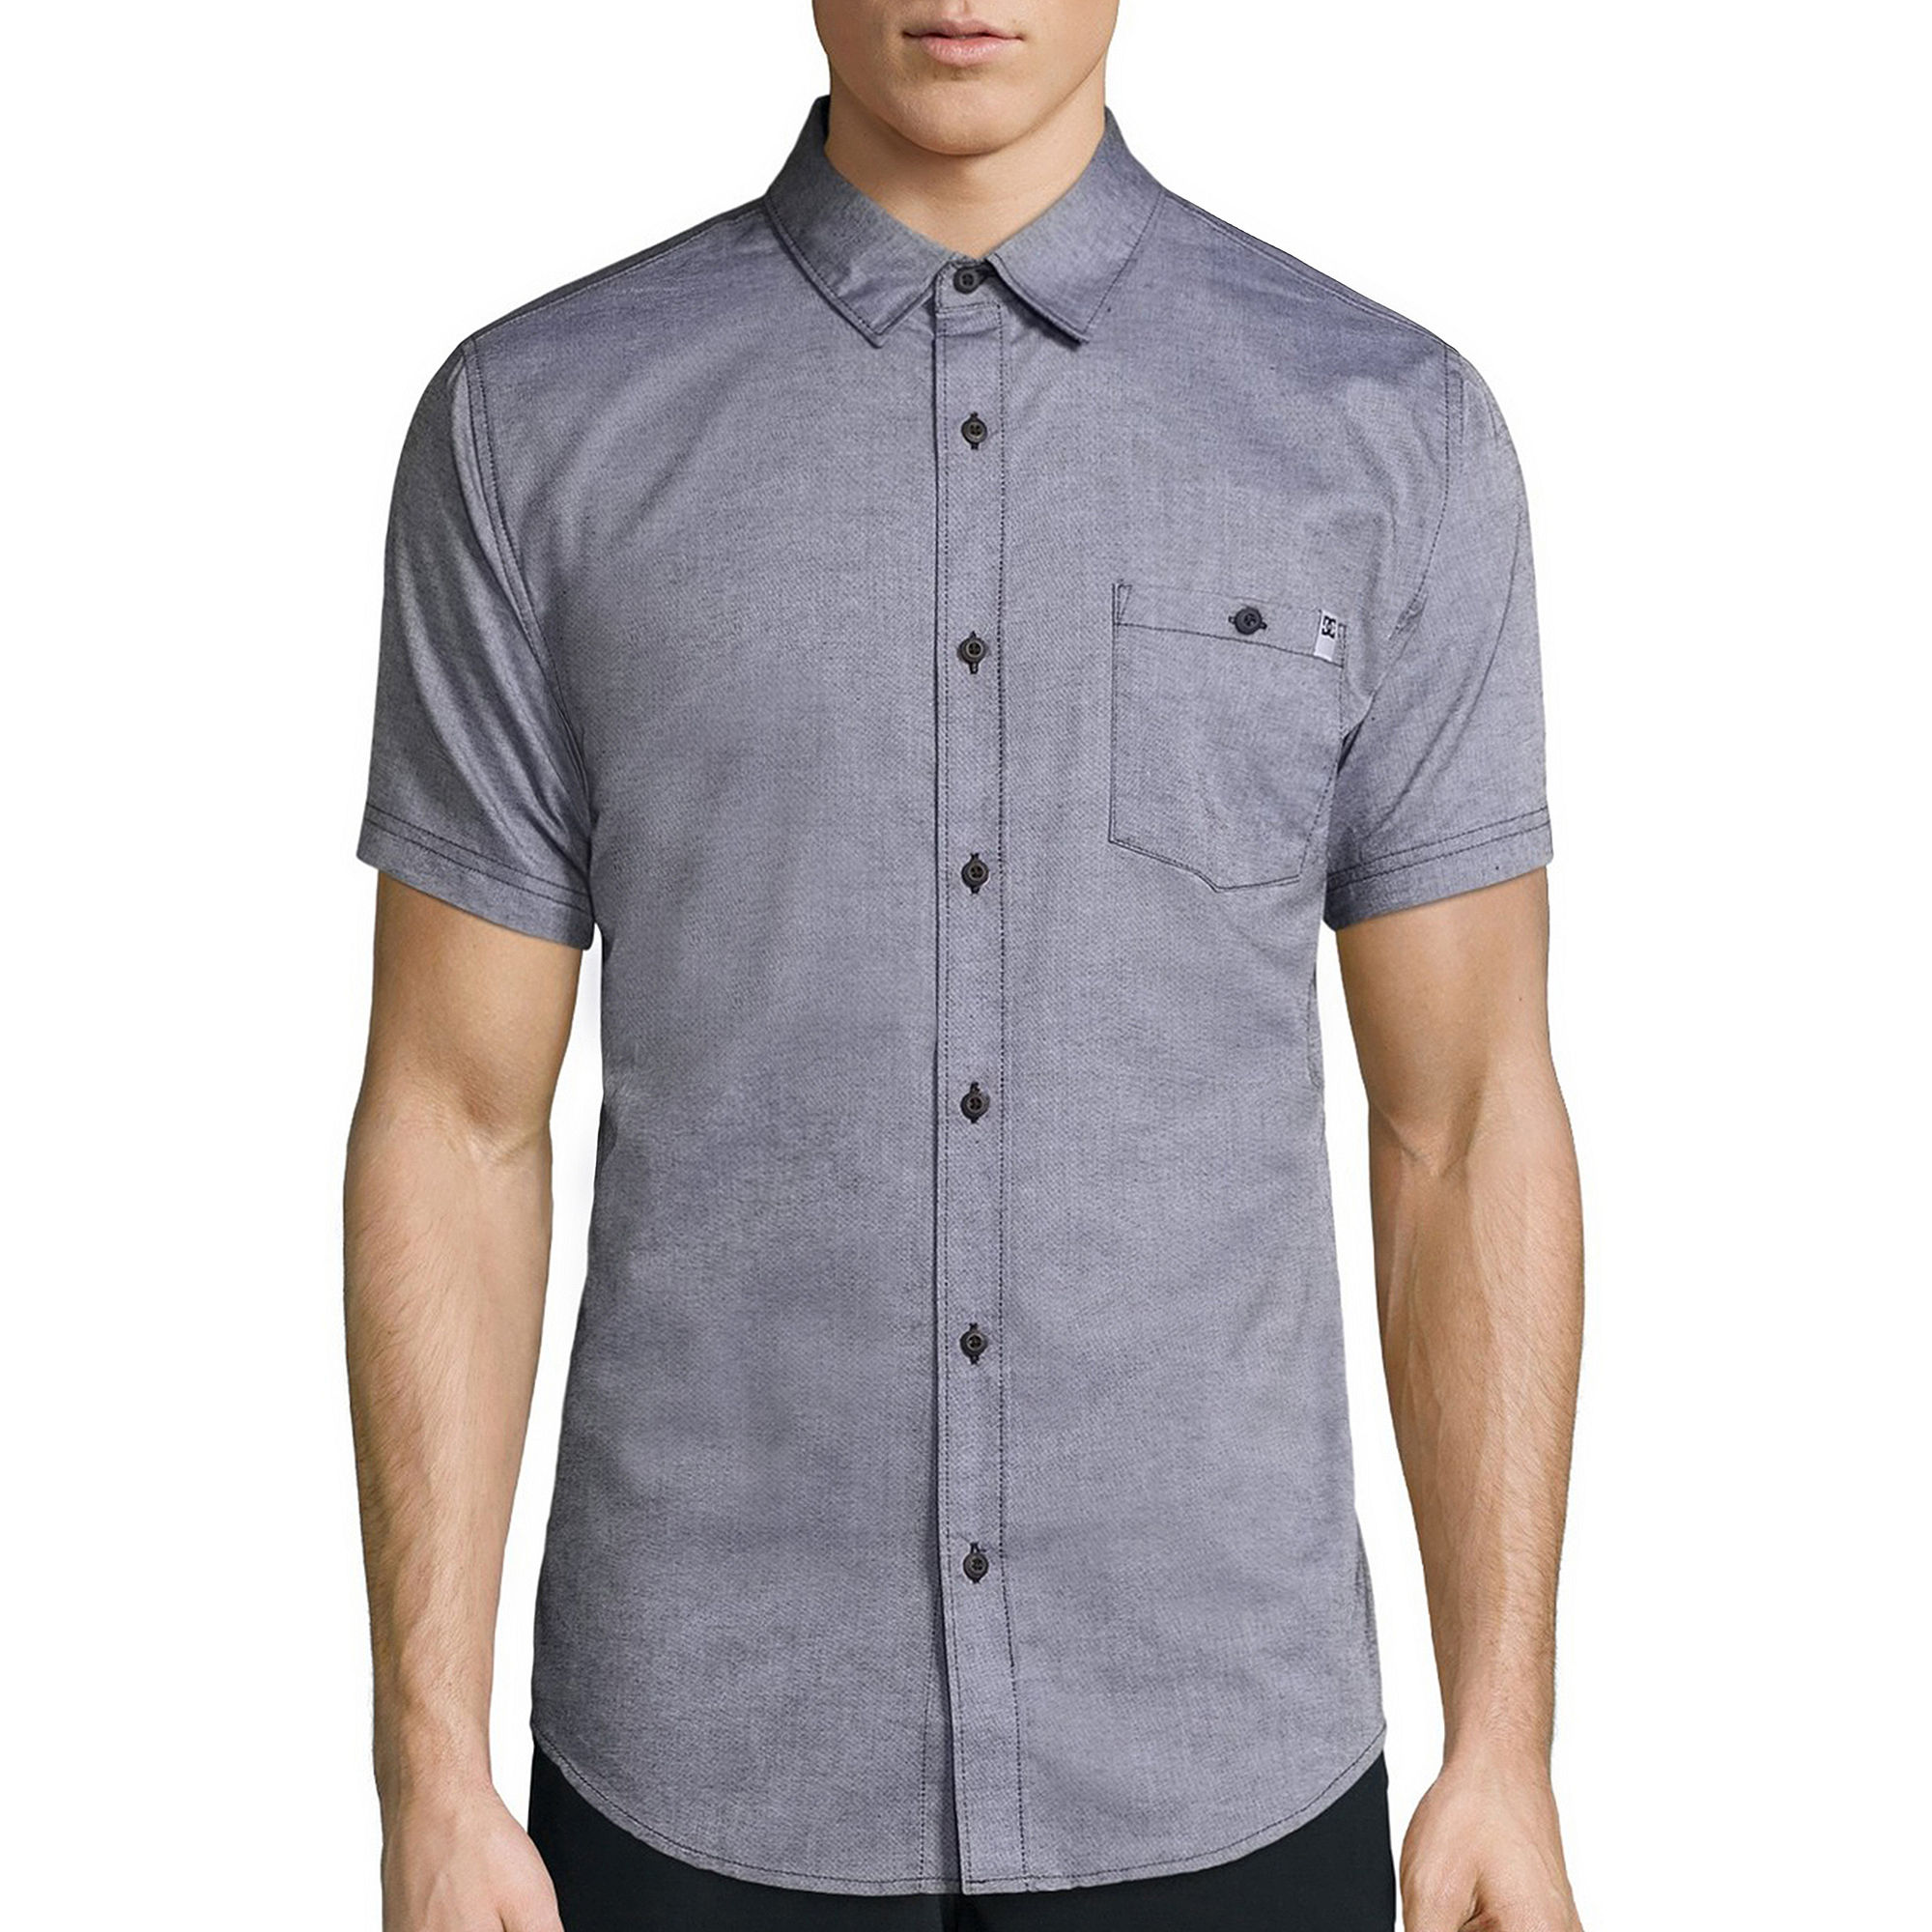 DC Shoes Co. Short-Sleeve Structure Woven Shirt